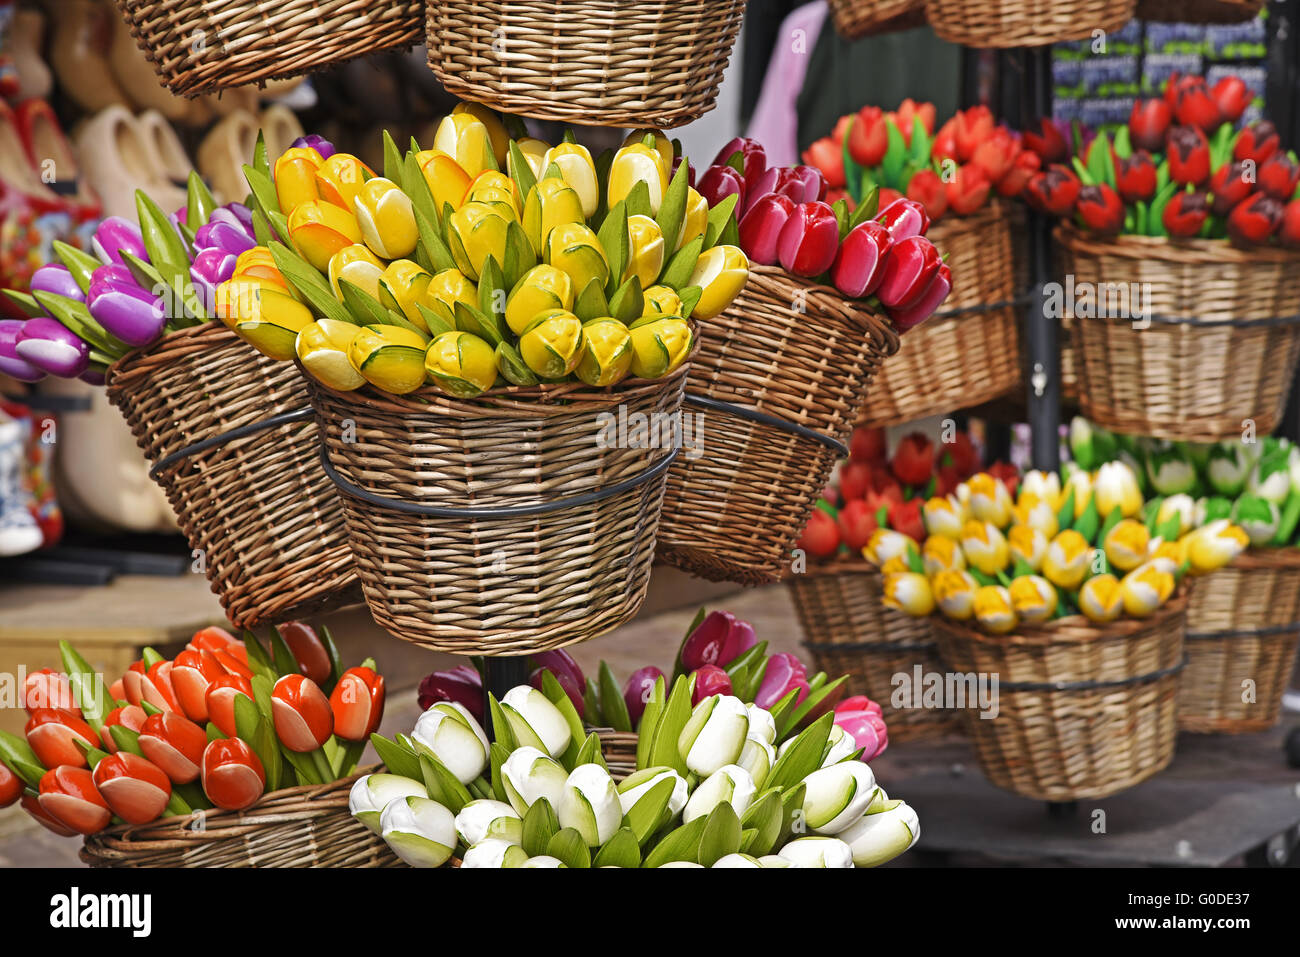 Artifical tulips, souvenirs, The Netherlands - Stock Image